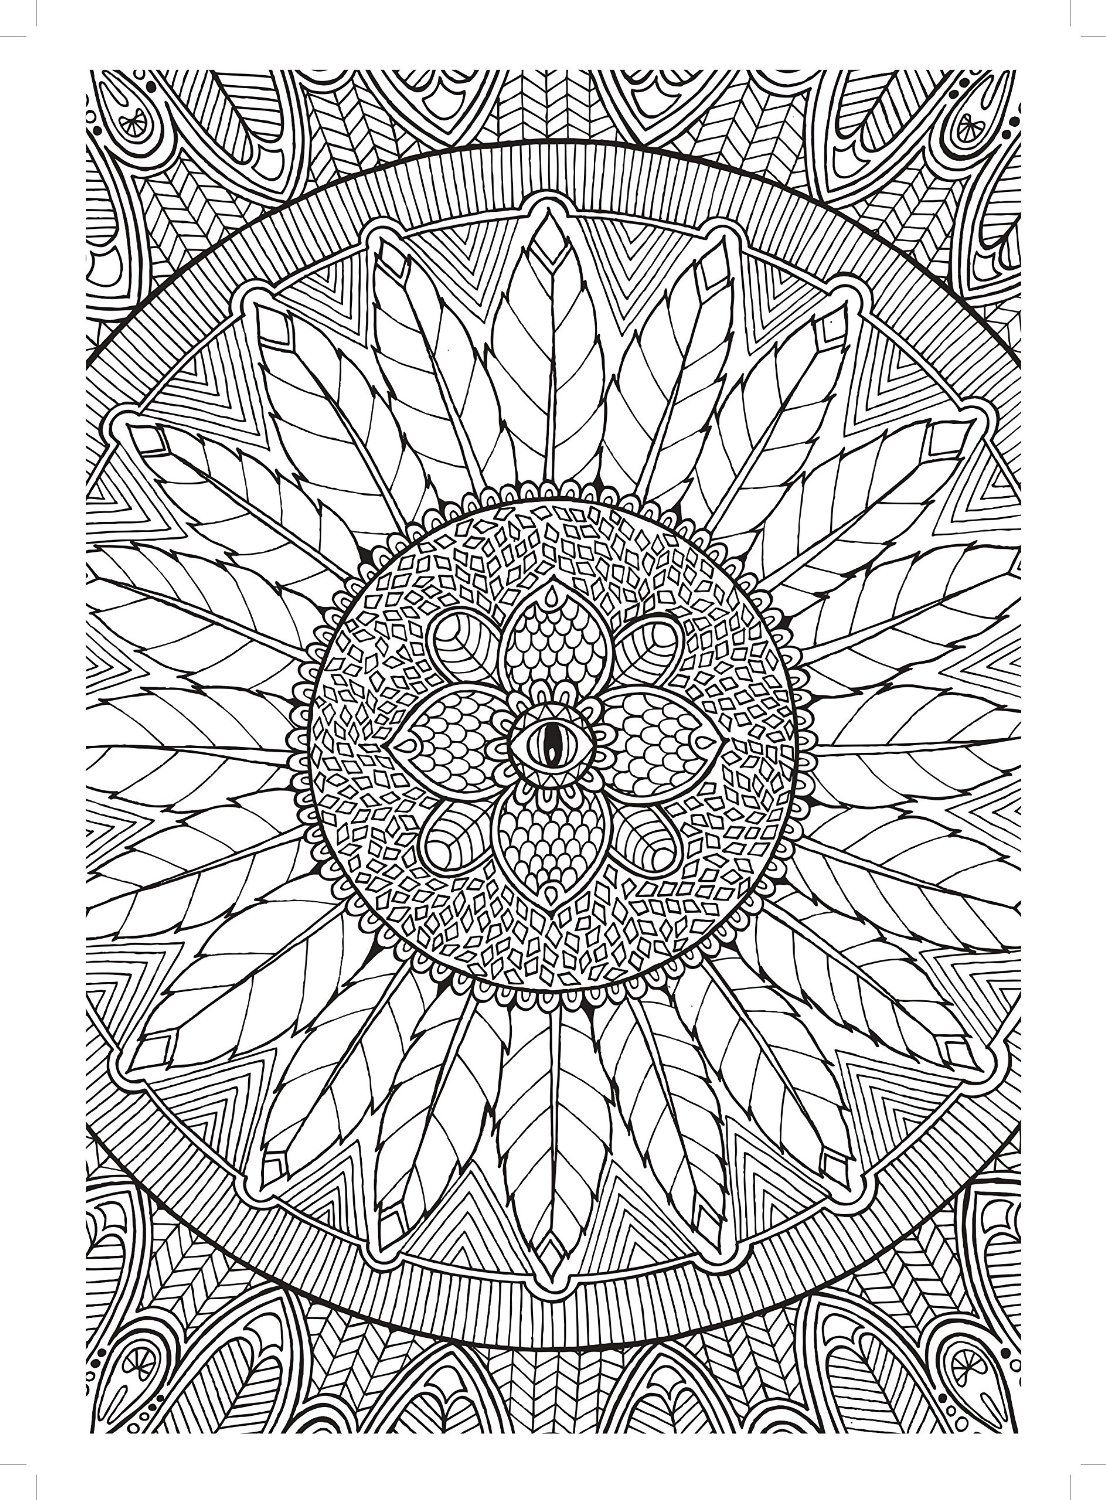 Pin By Marsha Maramba On Coloring Pages Coloring Pages Coloring